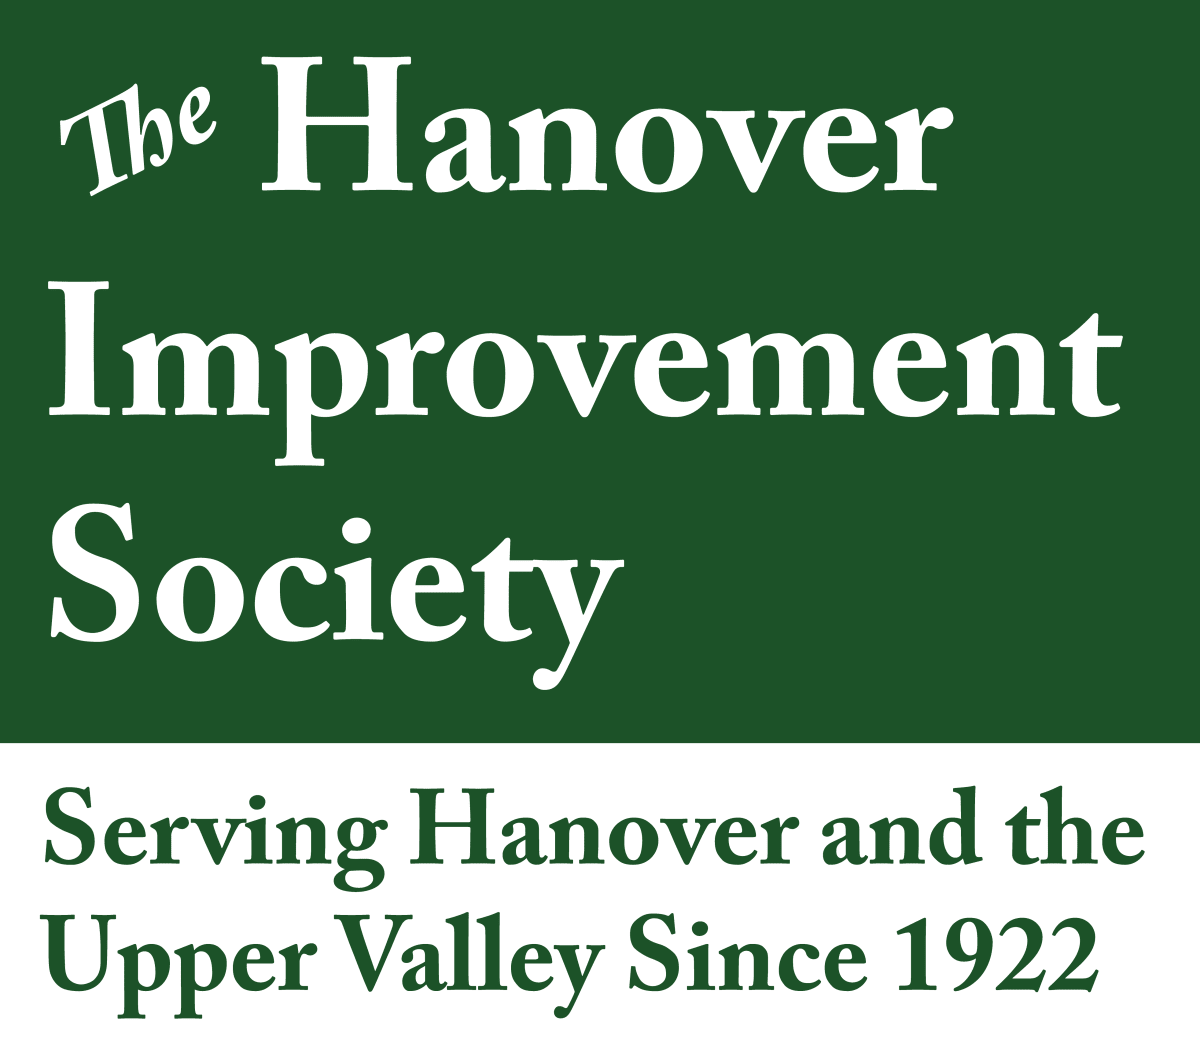 The-Hanover-Improvement-Society-w1200.png